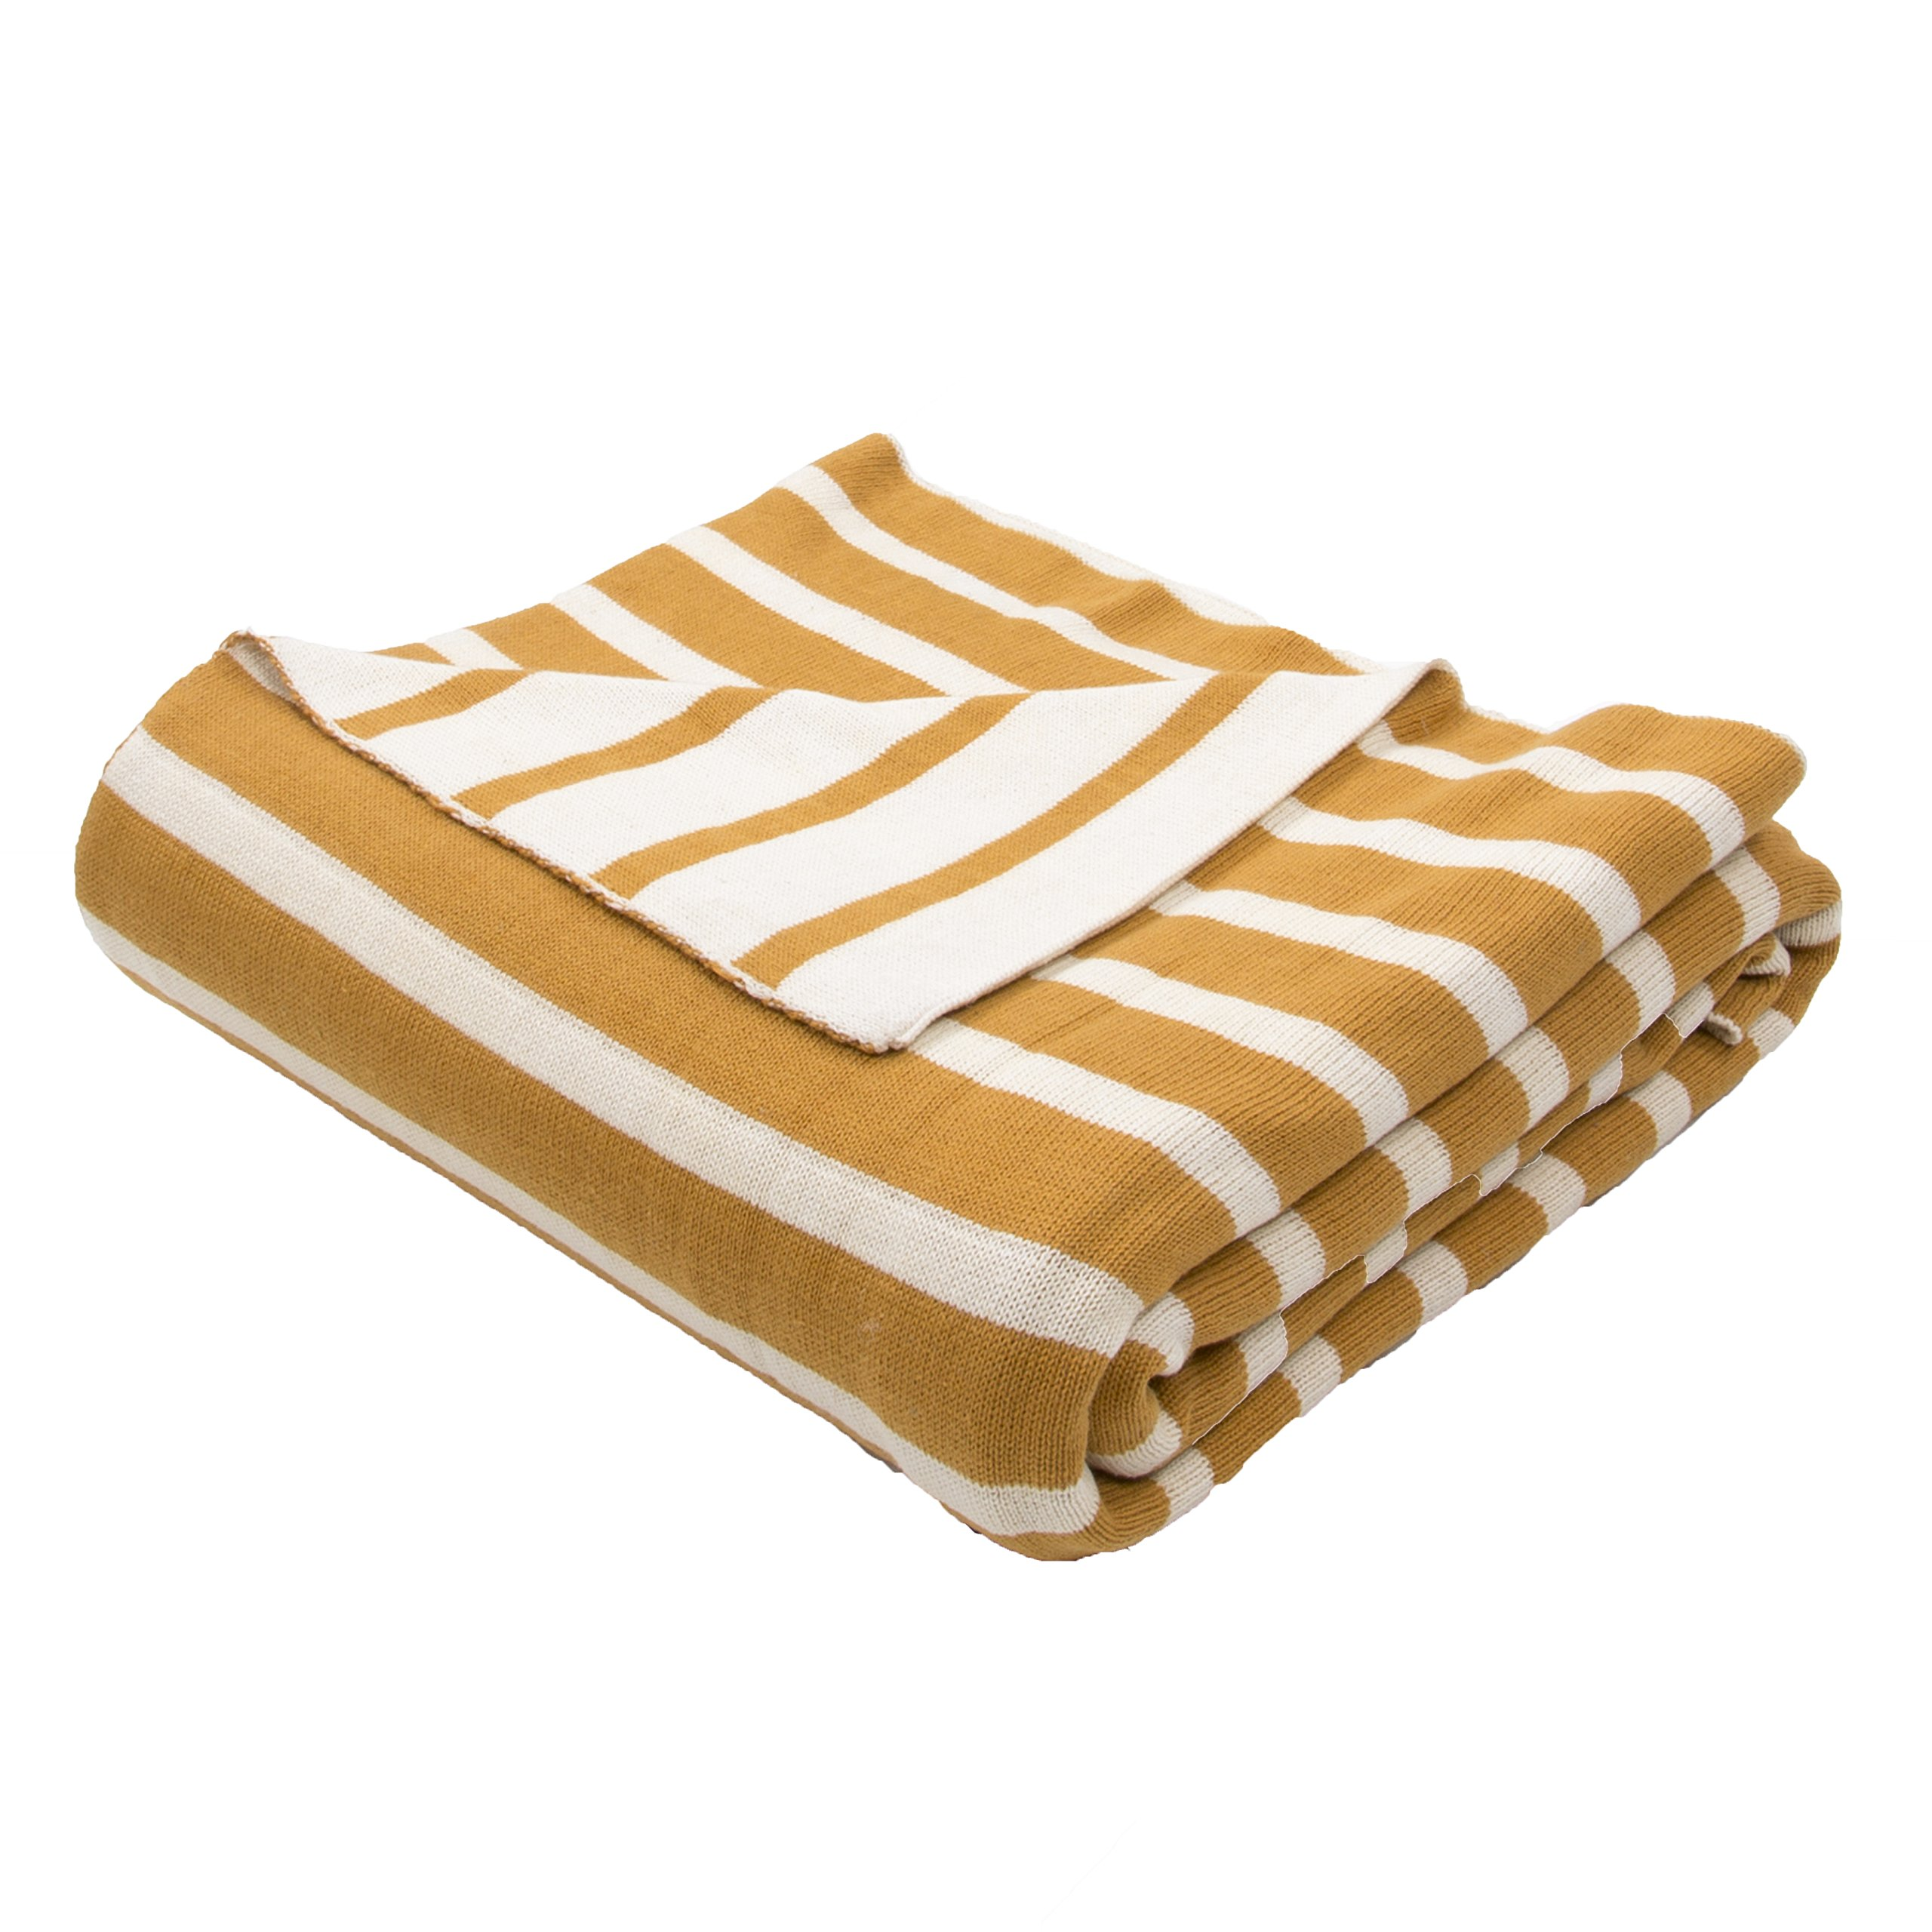 Jaipur Soft Hand Stripe Pattern Yellow/Gold Cotton Throw, 50-Inch x 60-Inch, Narcissus Tri-2